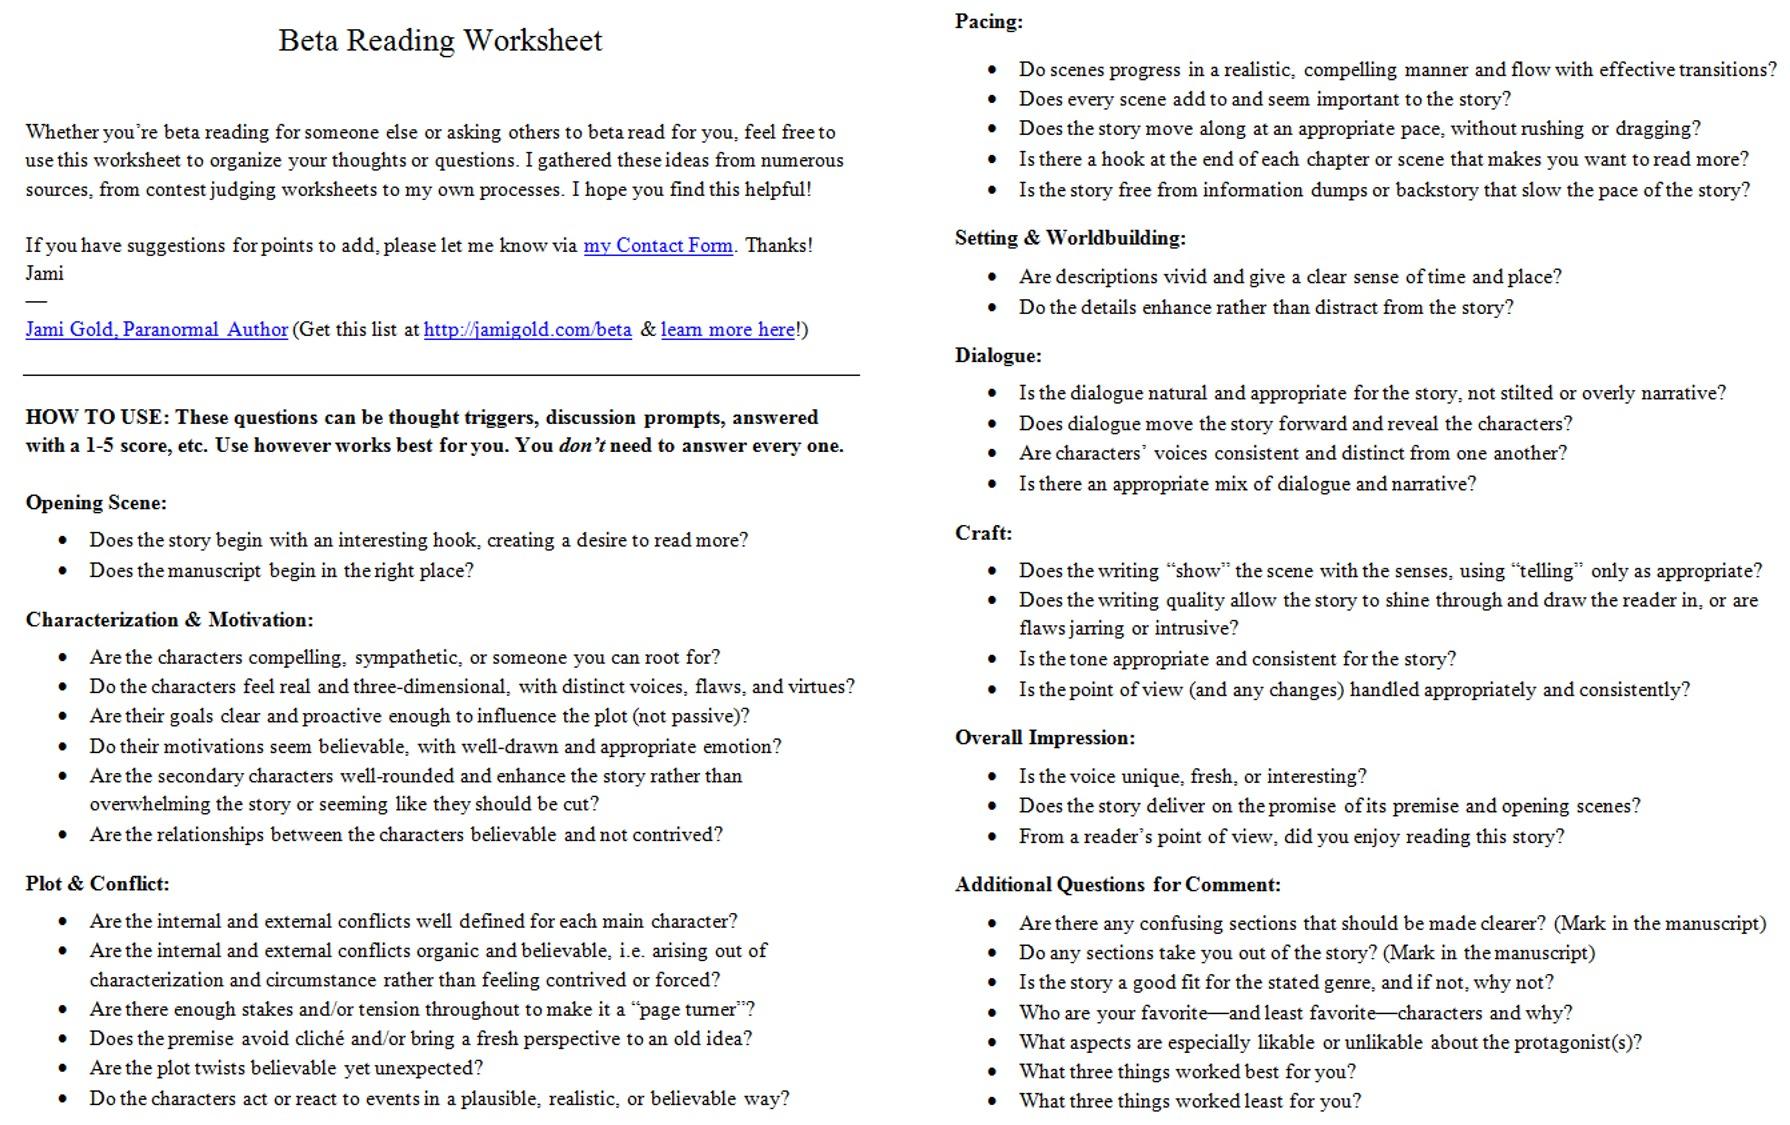 Proatmealus  Winning Worksheets For Writers  Jami Gold Paranormal Author With Hot Screen Shot Of The Twopage Beta Reading Worksheet With Enchanting Label A Plant Cell Worksheet Also Probability Worksheets Middle School In Addition Kindergarten Number Worksheets  And Farm Expense Worksheet As Well As Addition And Subtraction Fact Worksheets Additionally Multiplication Worksheets Fun From Jamigoldcom With Proatmealus  Hot Worksheets For Writers  Jami Gold Paranormal Author With Enchanting Screen Shot Of The Twopage Beta Reading Worksheet And Winning Label A Plant Cell Worksheet Also Probability Worksheets Middle School In Addition Kindergarten Number Worksheets  From Jamigoldcom